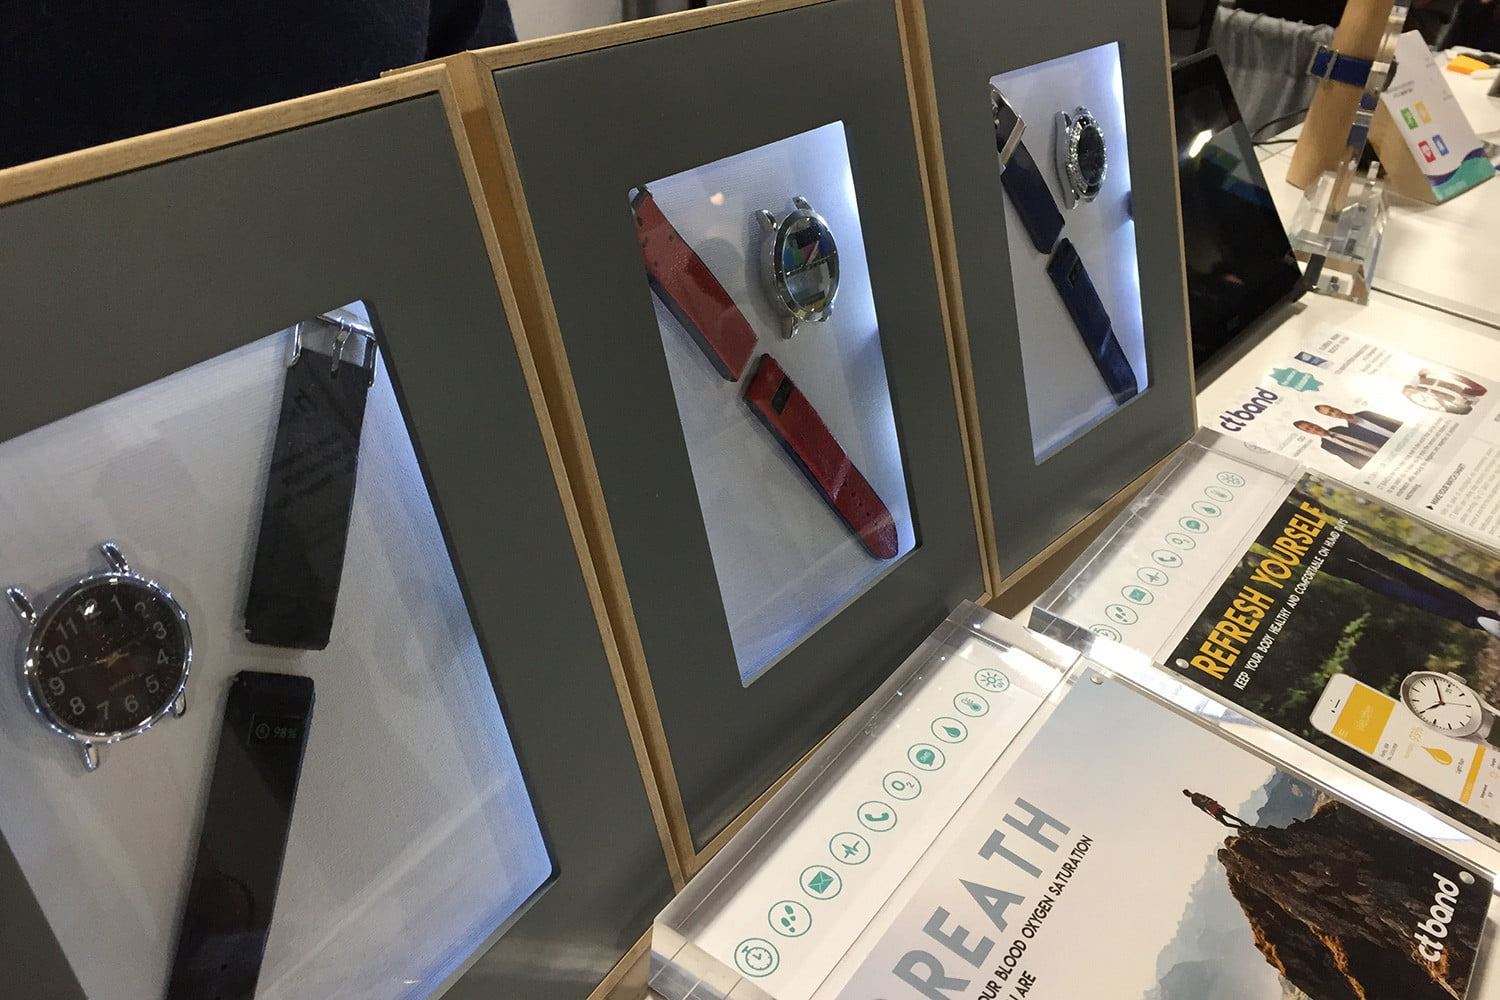 ct band smart watch ces 2017 img 6043